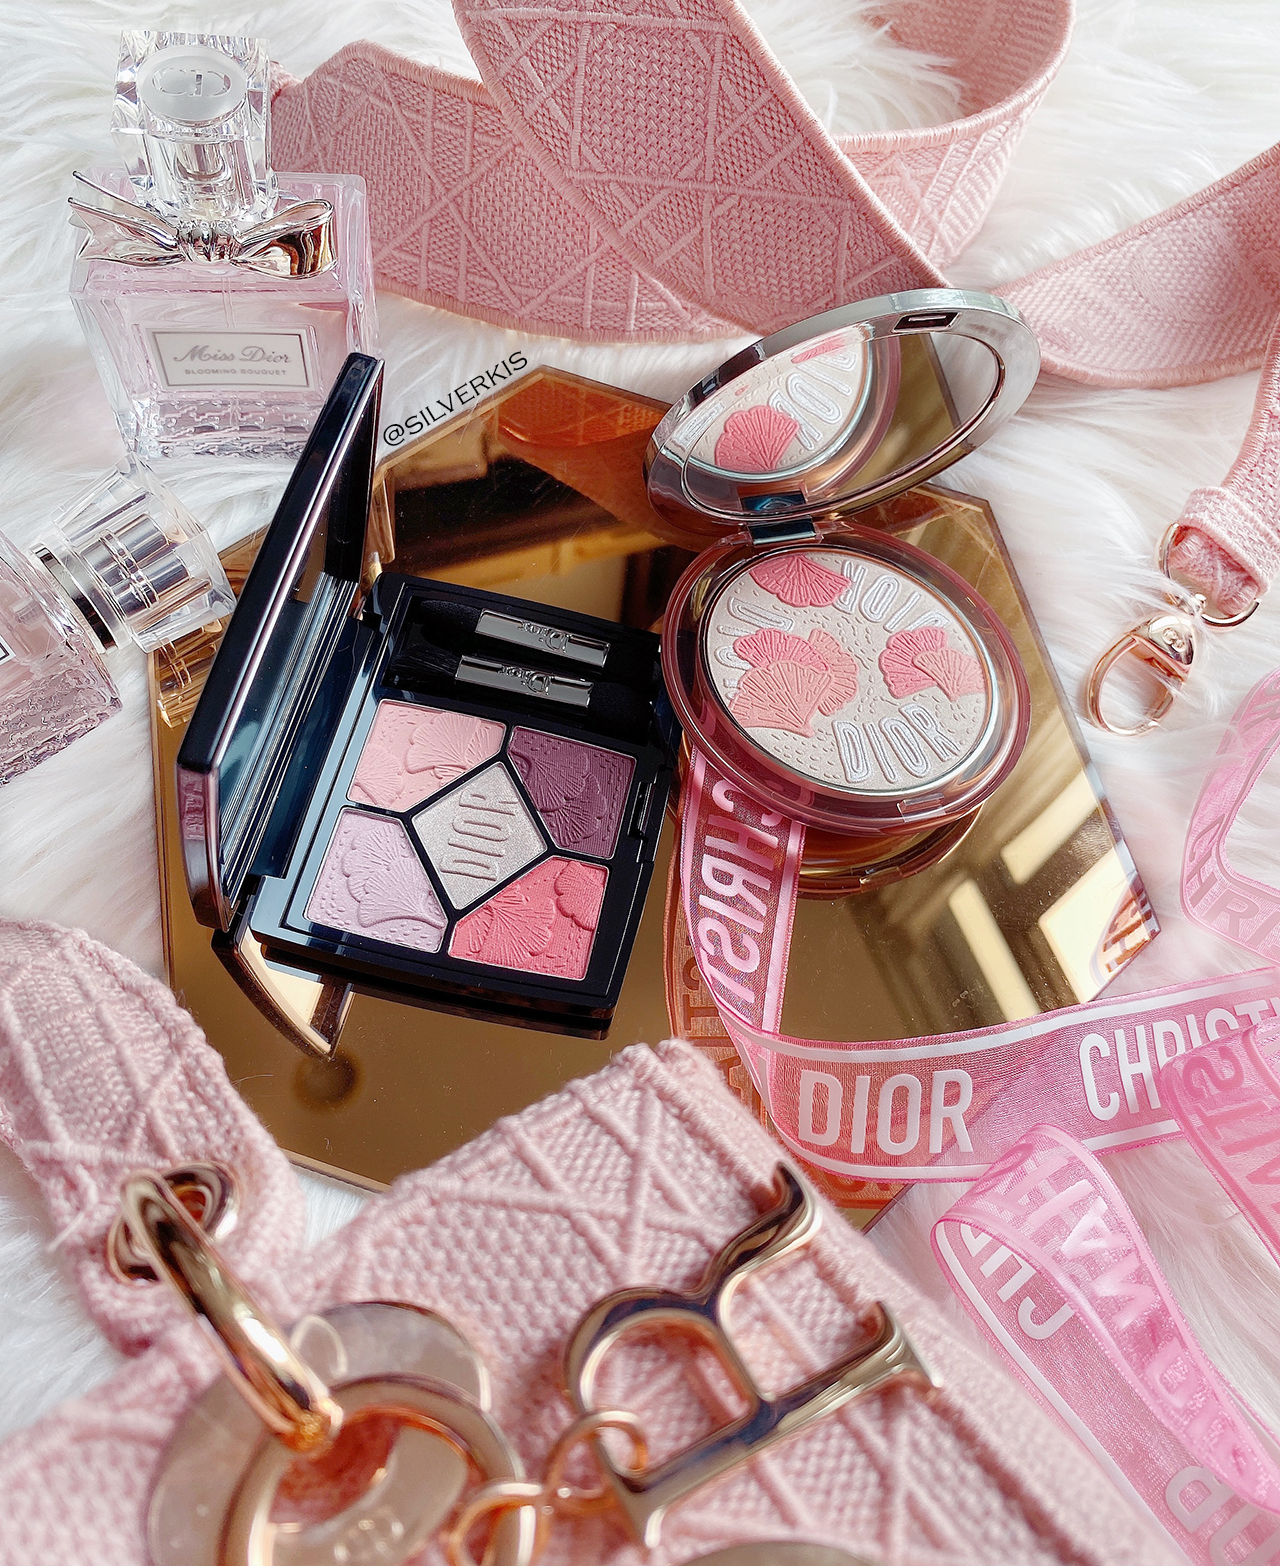 Dior Diorsnow Garden of Light Spring 2020